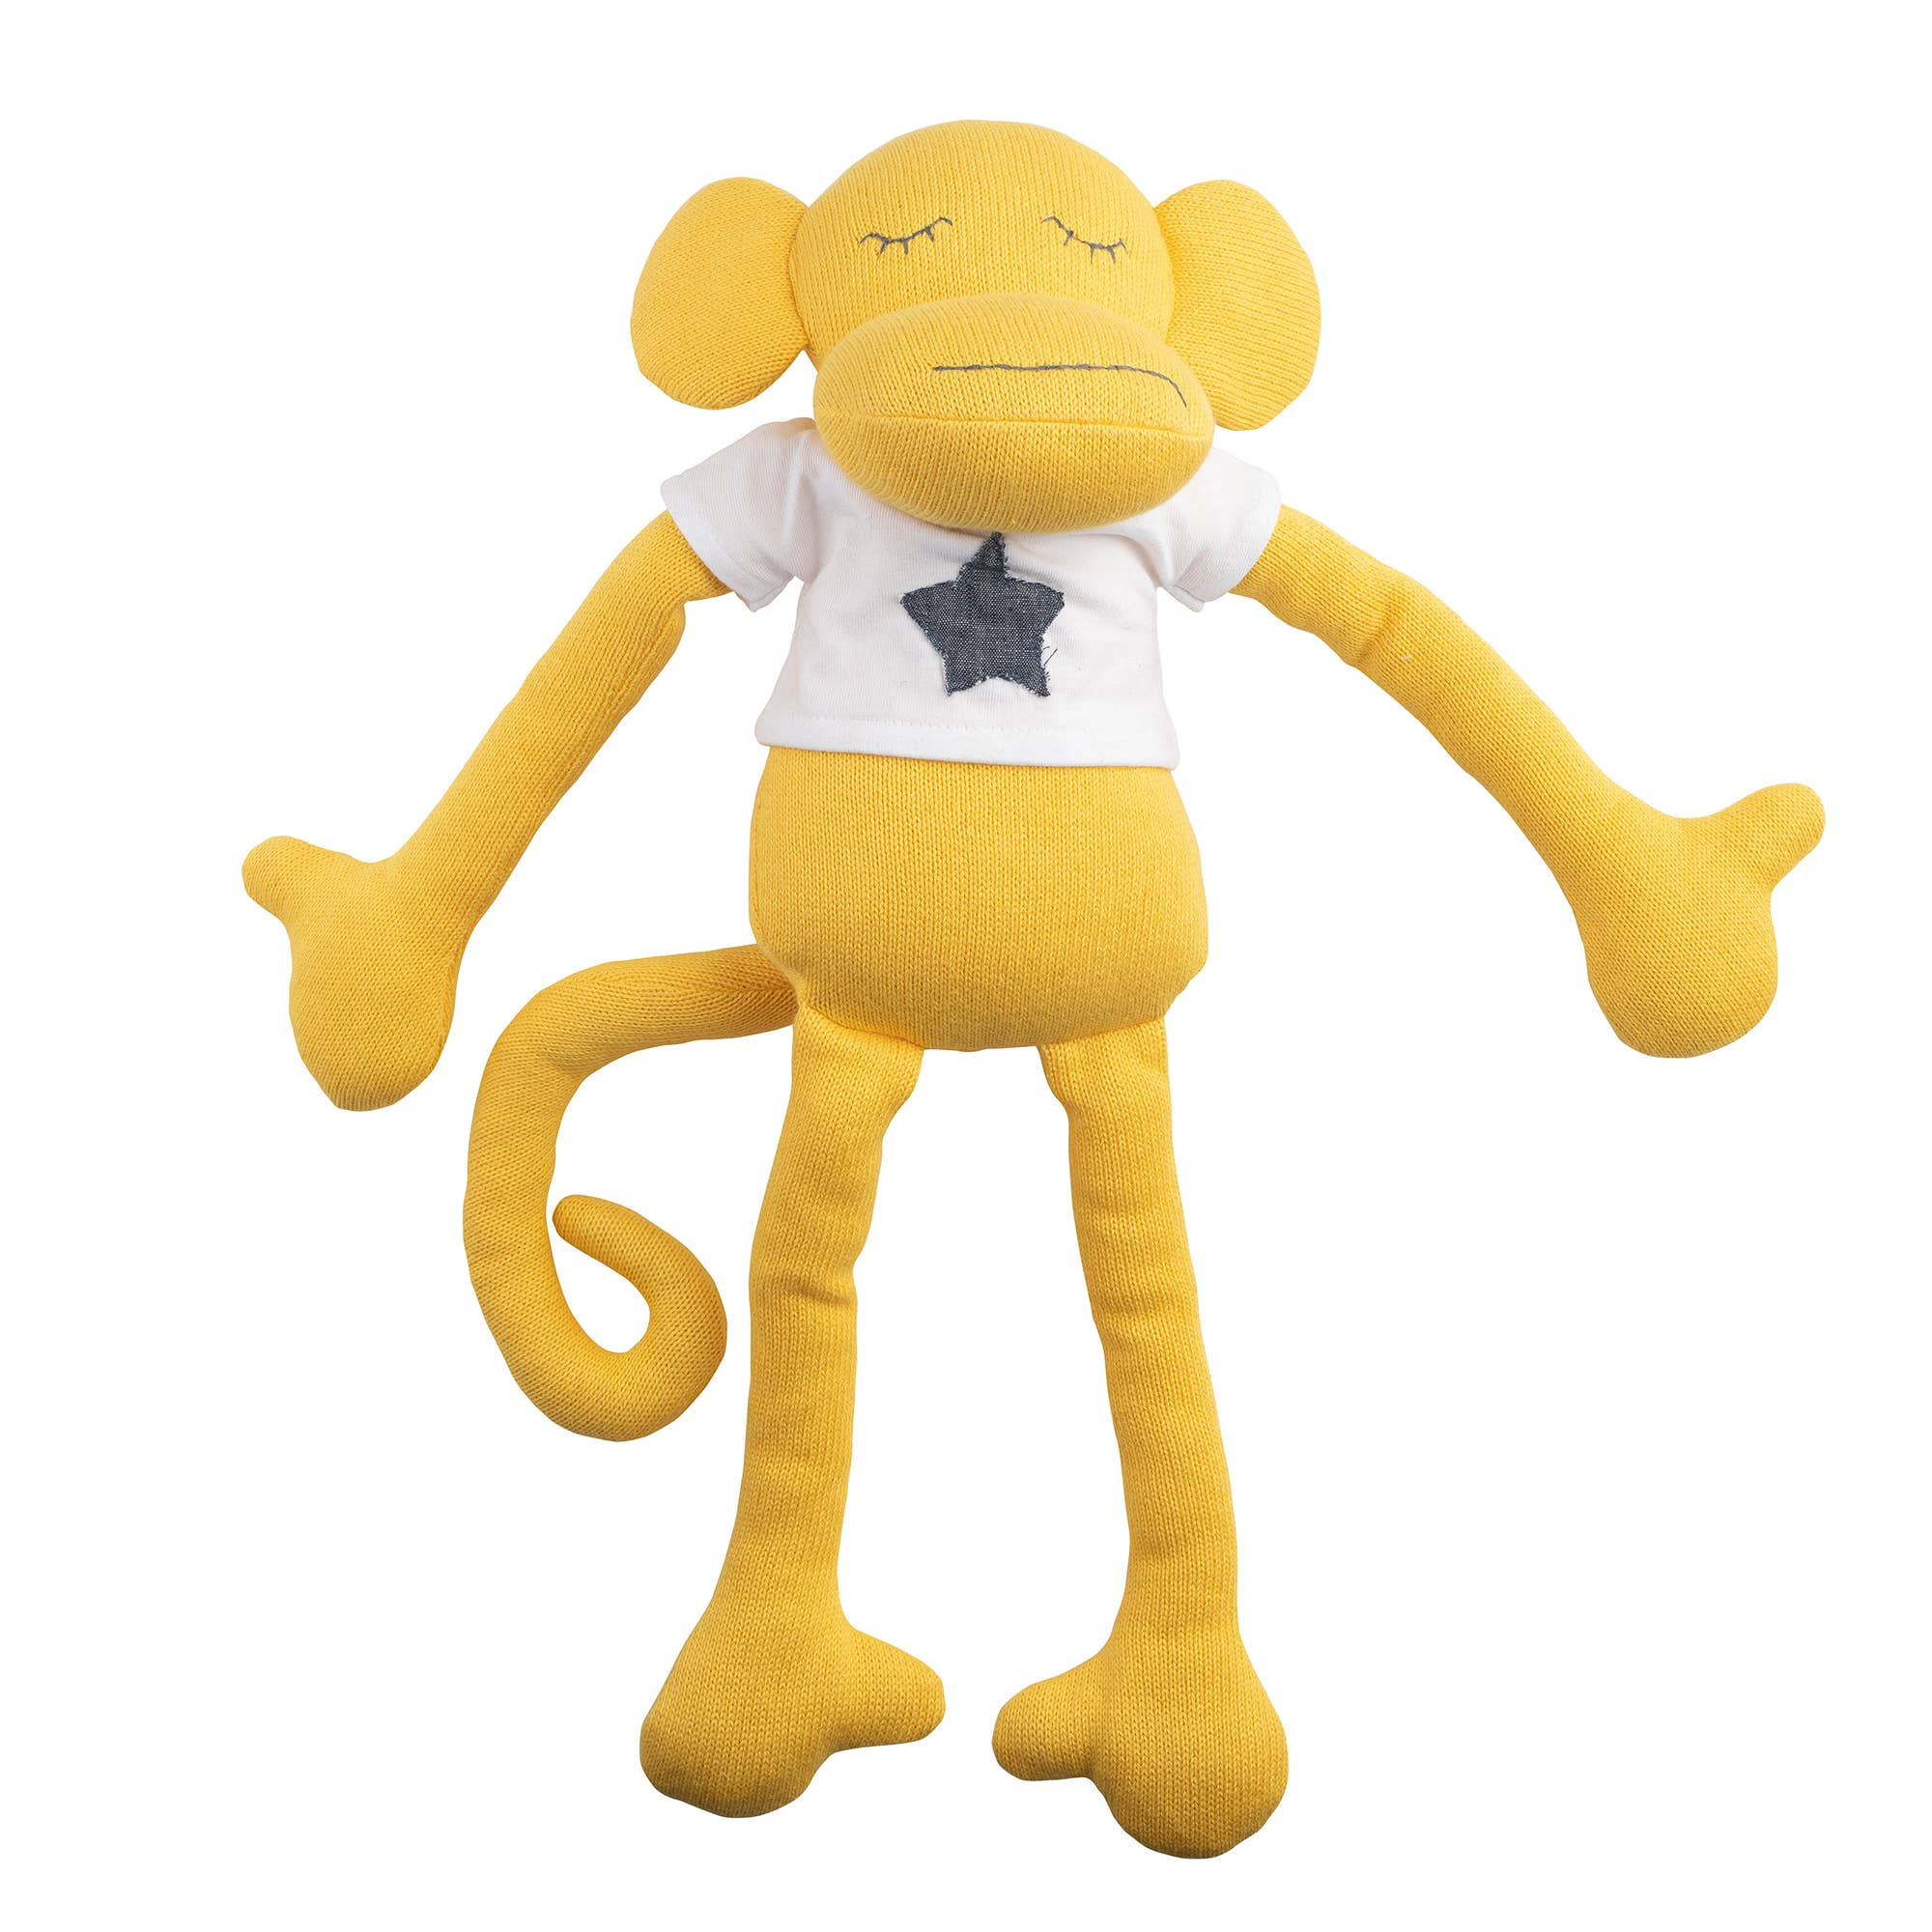 Lil Pyar Yellow Monkey Plush Huggie